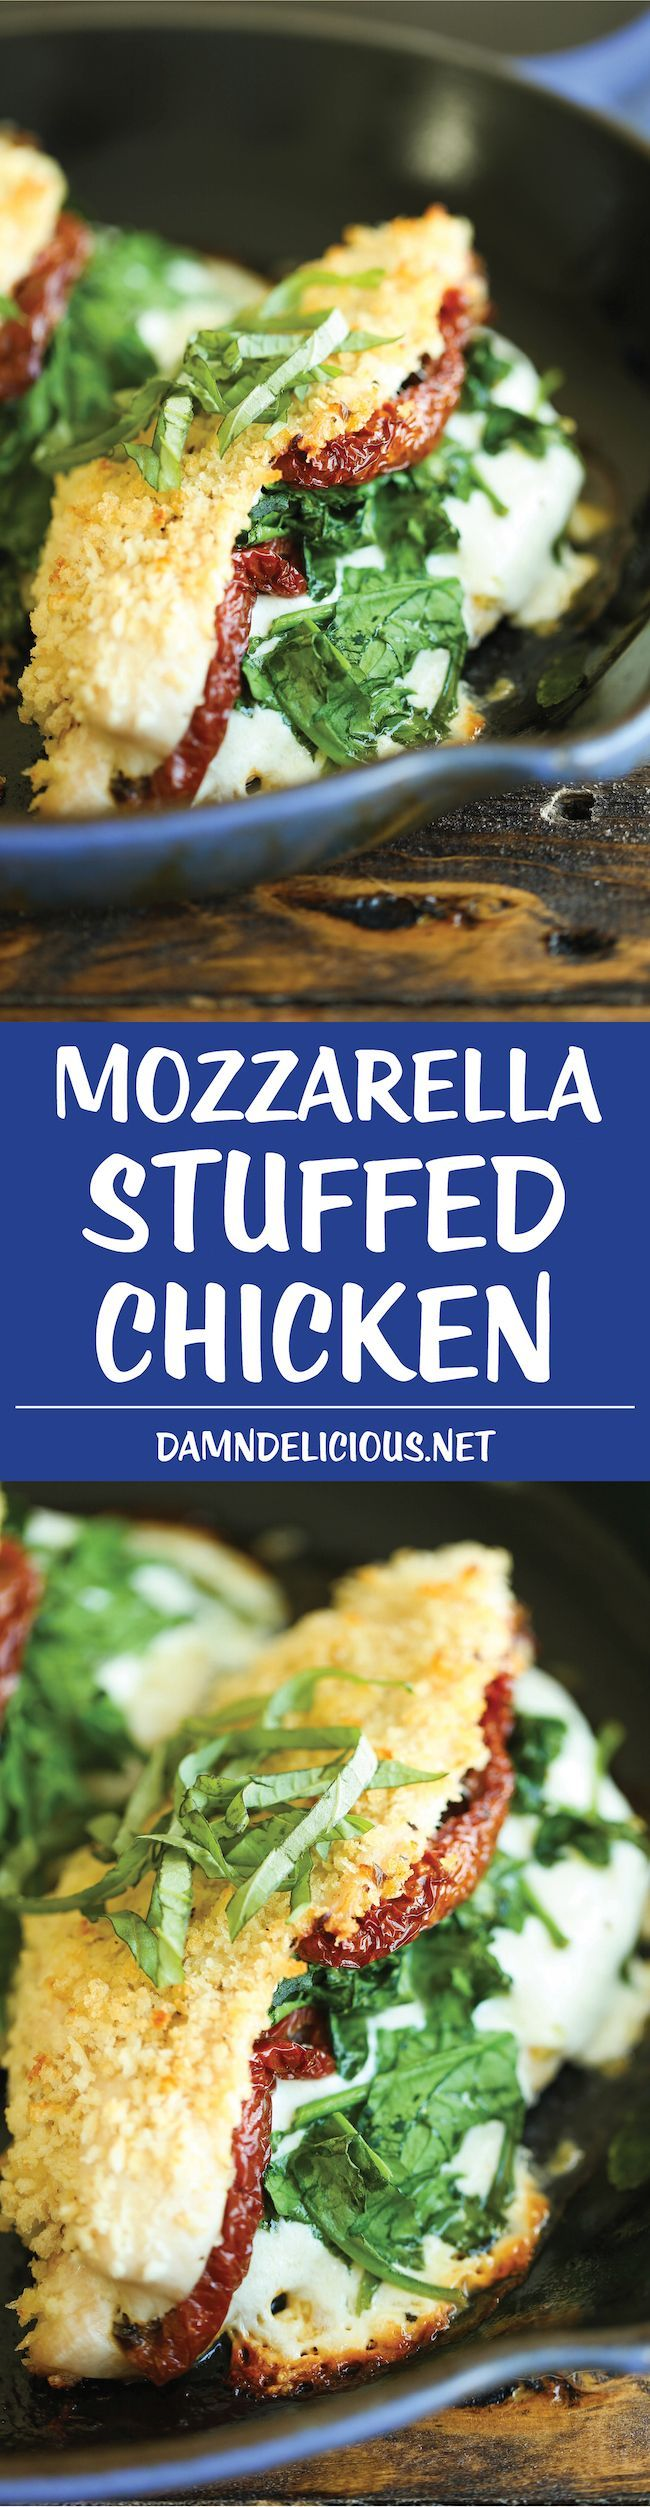 Mozzarella Stuffed Chicken - Chicken breasts stuffed with mozzarella, spinach, and sun dried tomatoes - baked to absolute crisp-tender cheesy perfection!